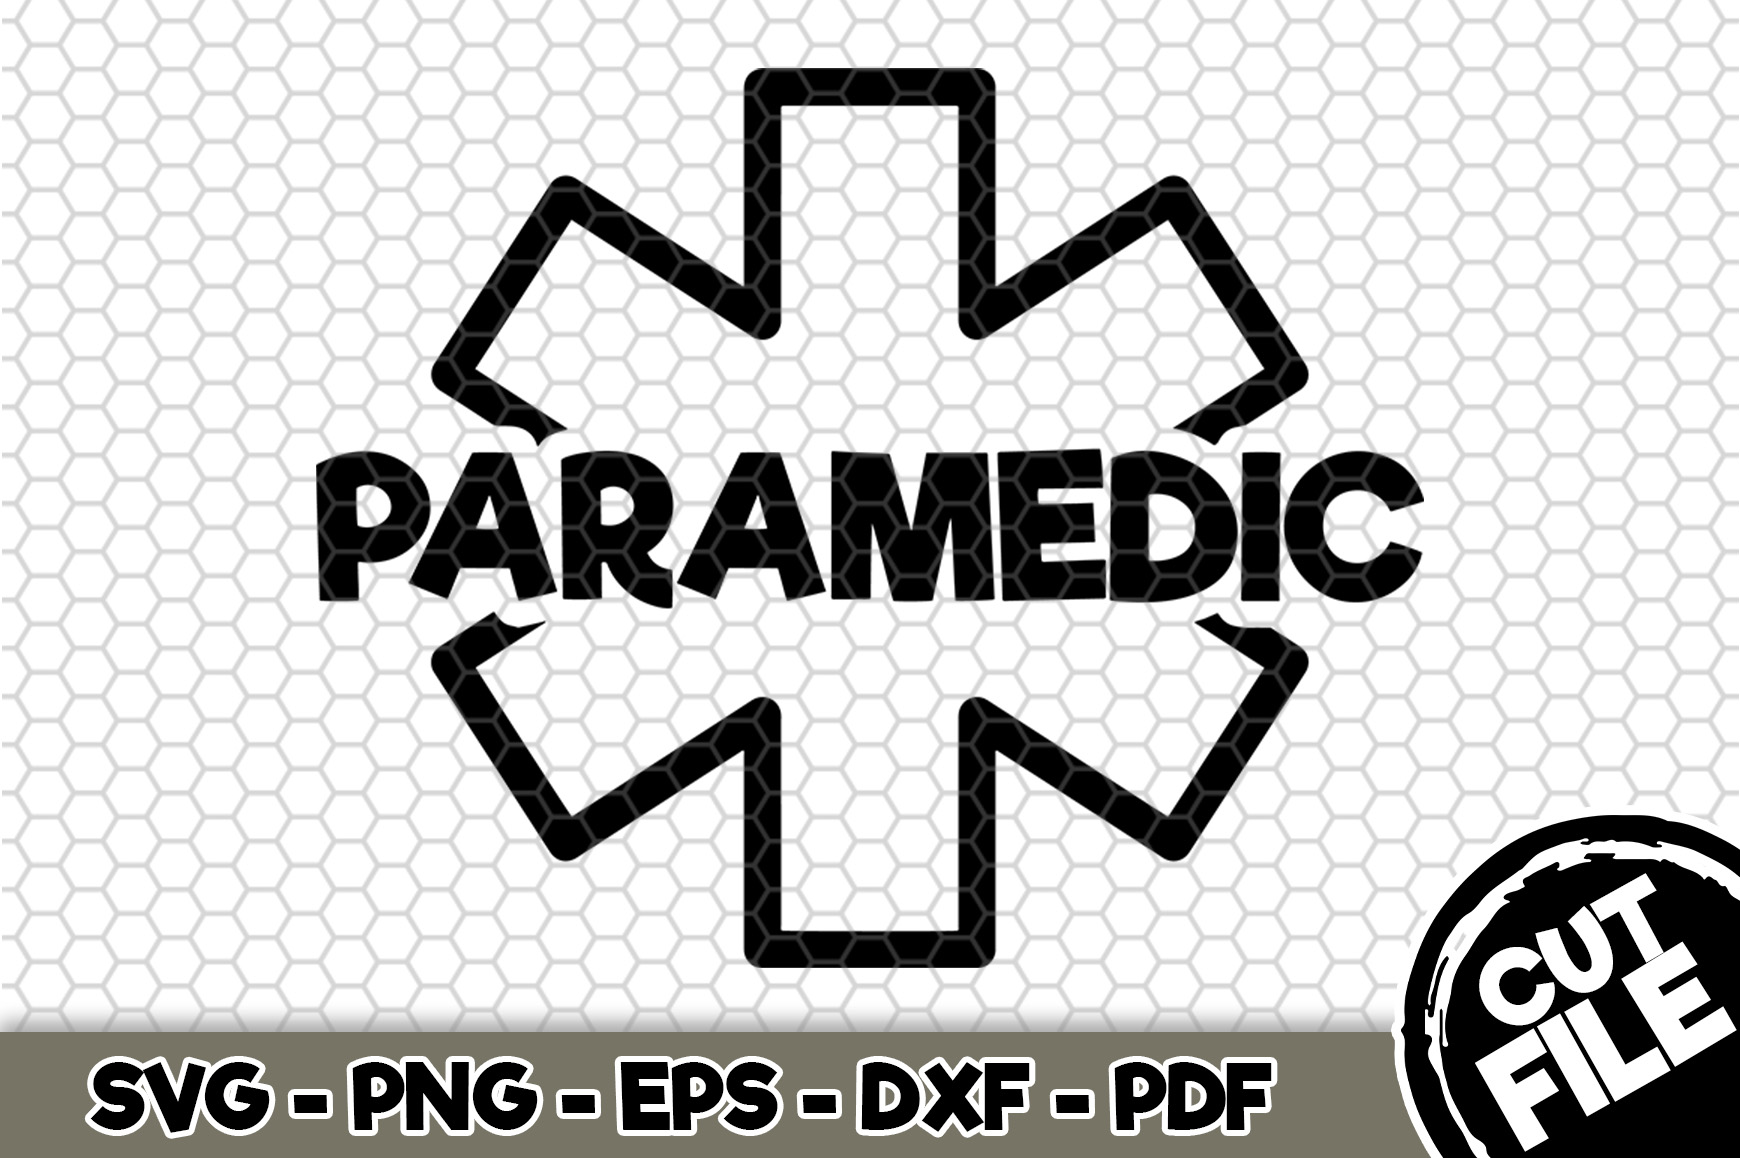 Download Free Paramedic Craft File Graphic By Svgexpress Creative Fabrica for Cricut Explore, Silhouette and other cutting machines.